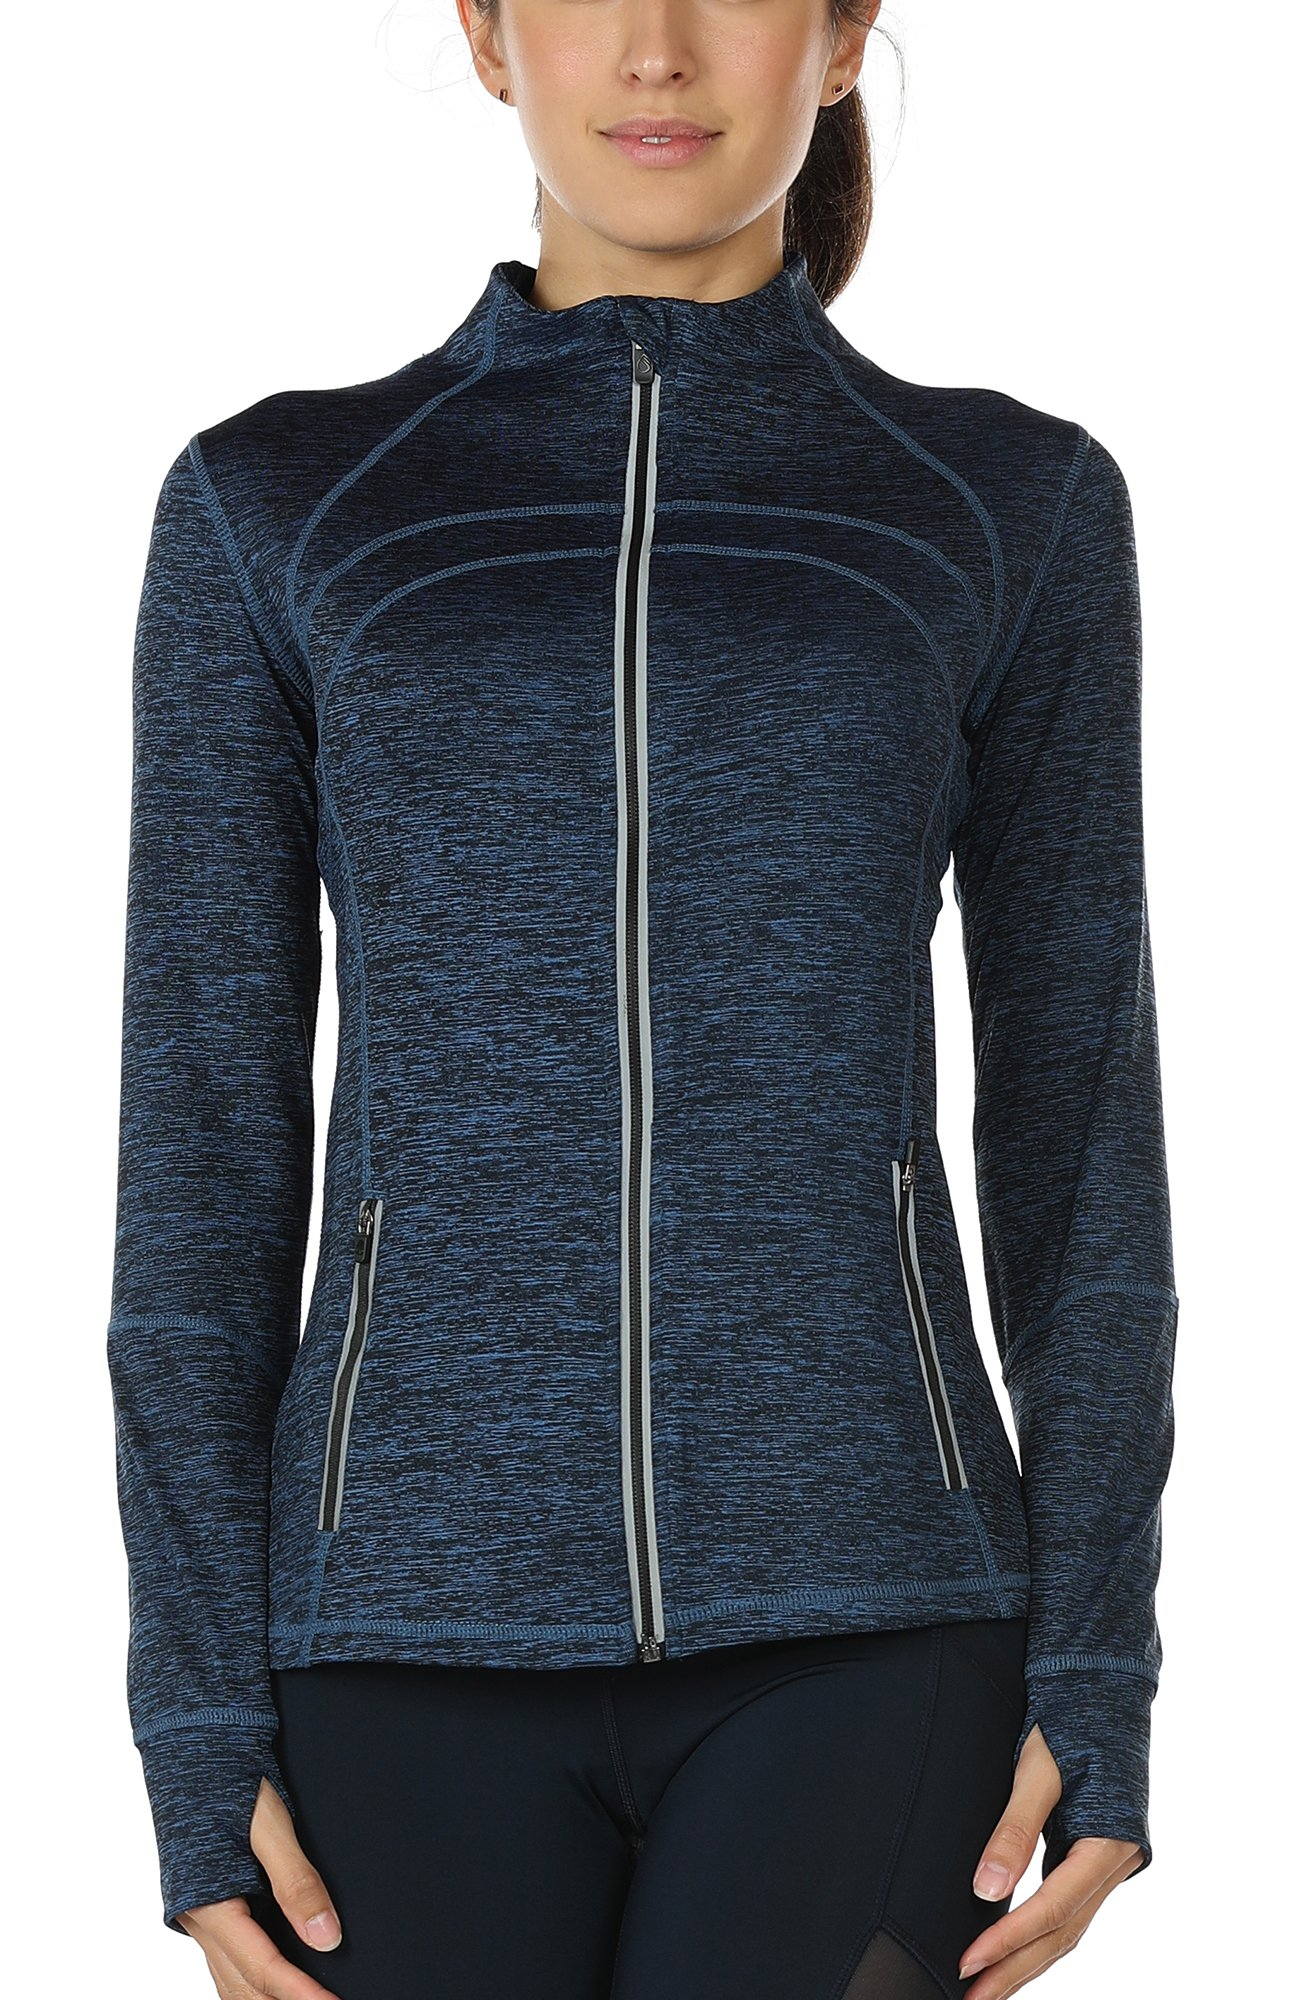 icyzone Women's Running Shirt Full Zip Workout Track Jacket with Thumb Holes (L, Royal Blue)